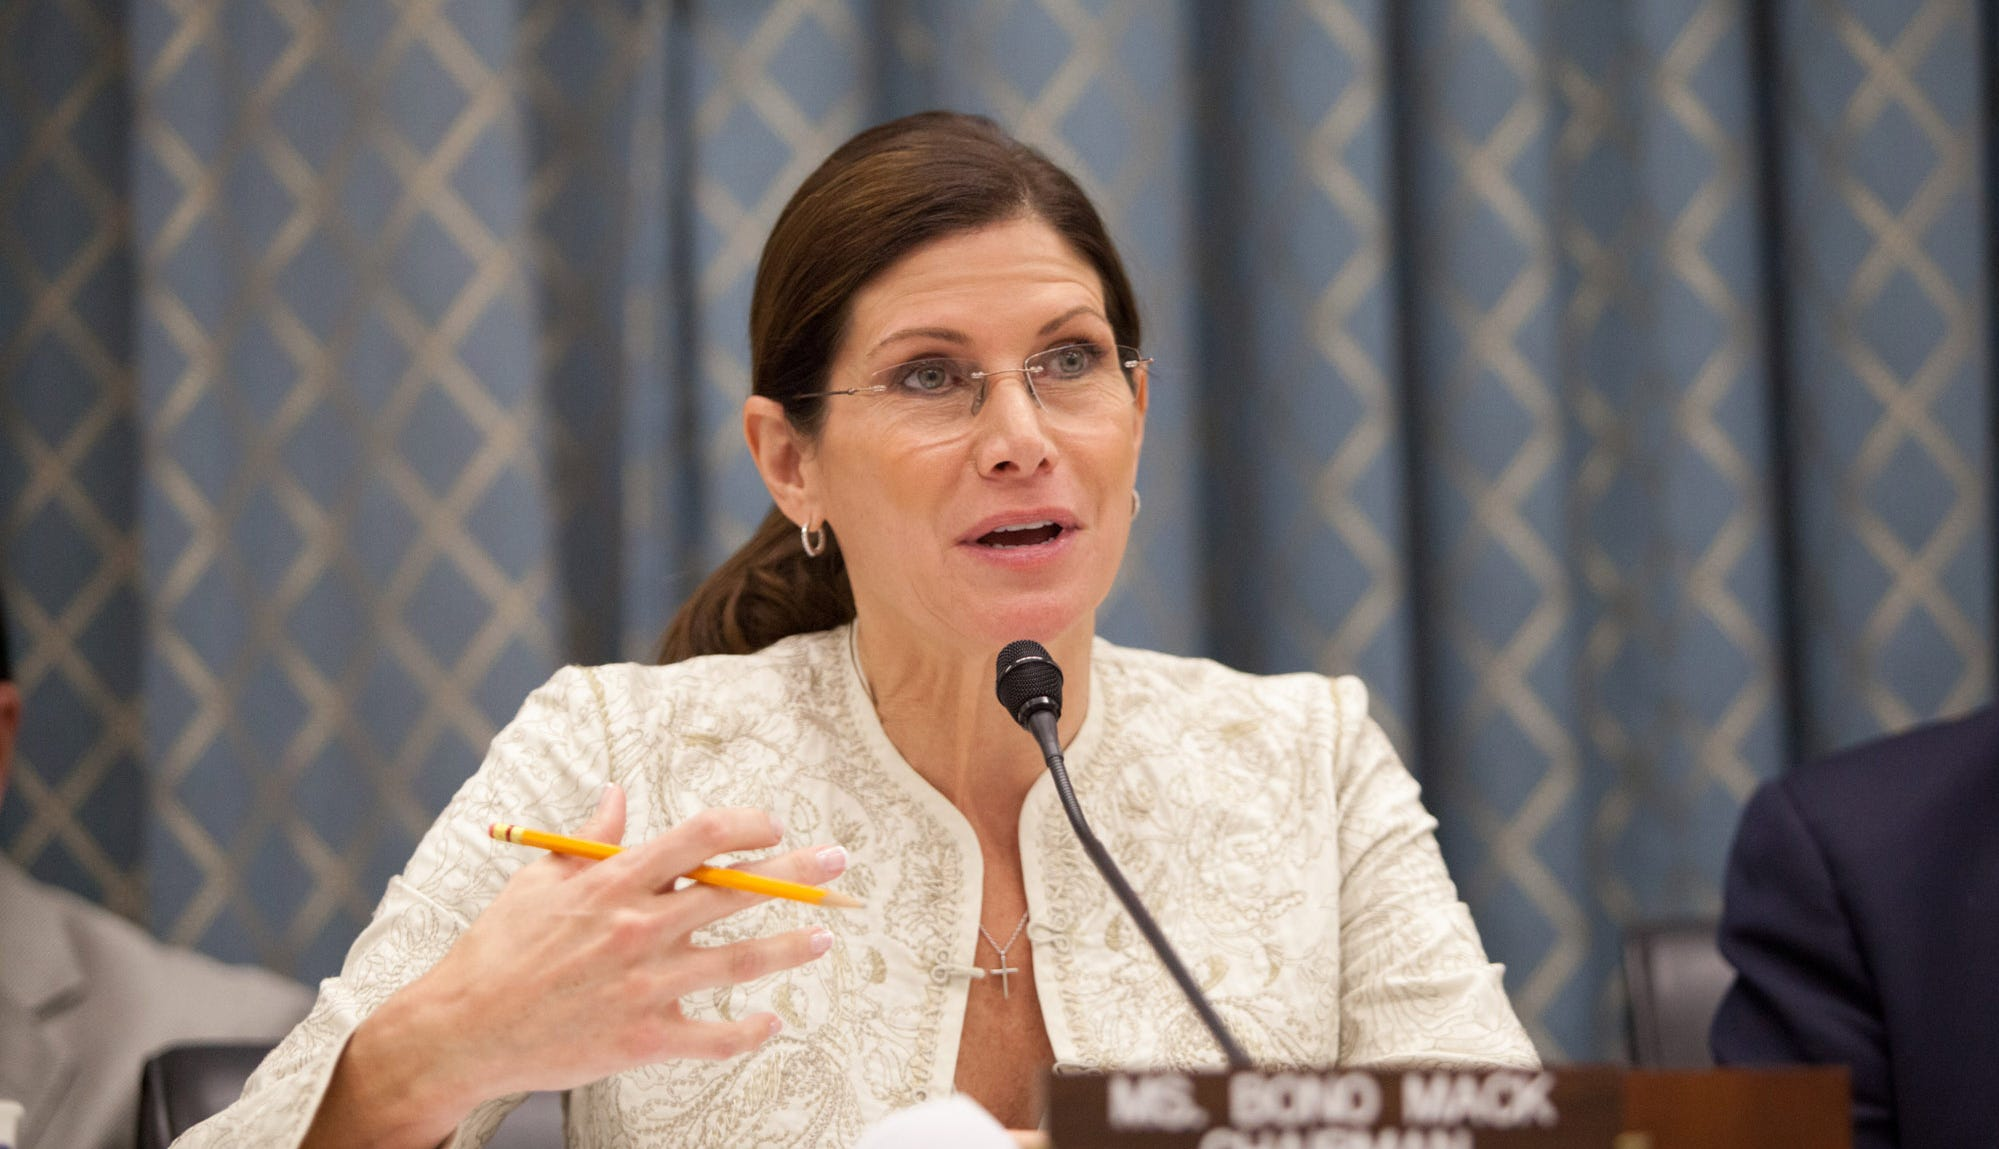 Former Congresswoman Mary Bono has been named interim CEO and president of USA Gymnastics.